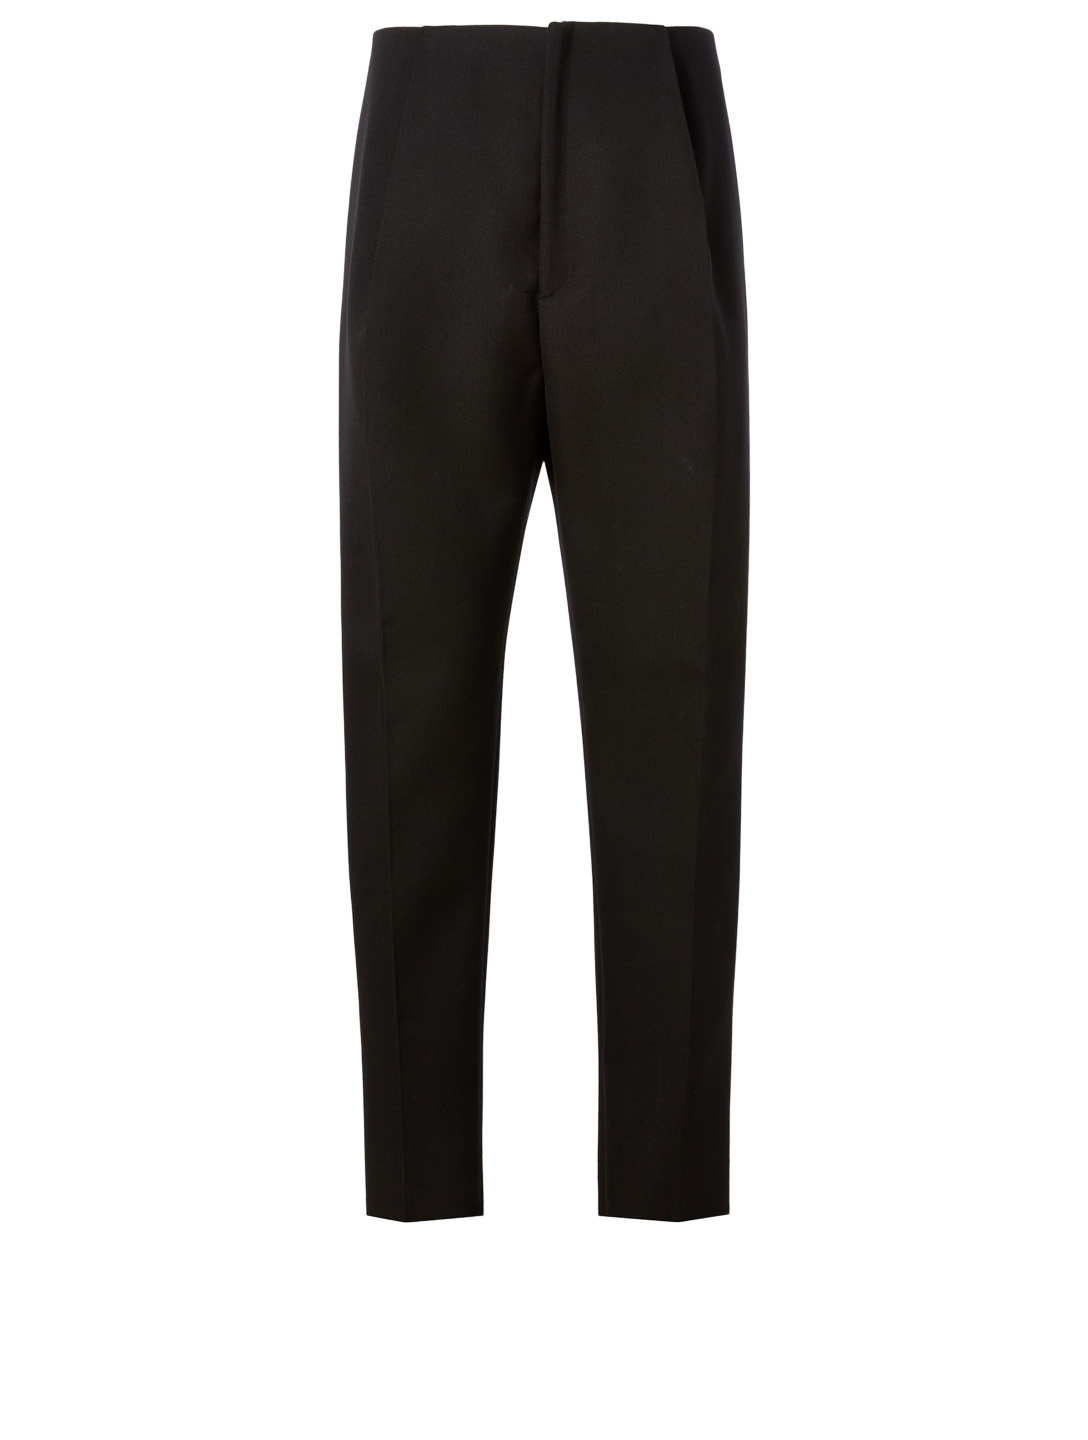 BOTTEGA VENETA Wool Pleated Pants Men's Black